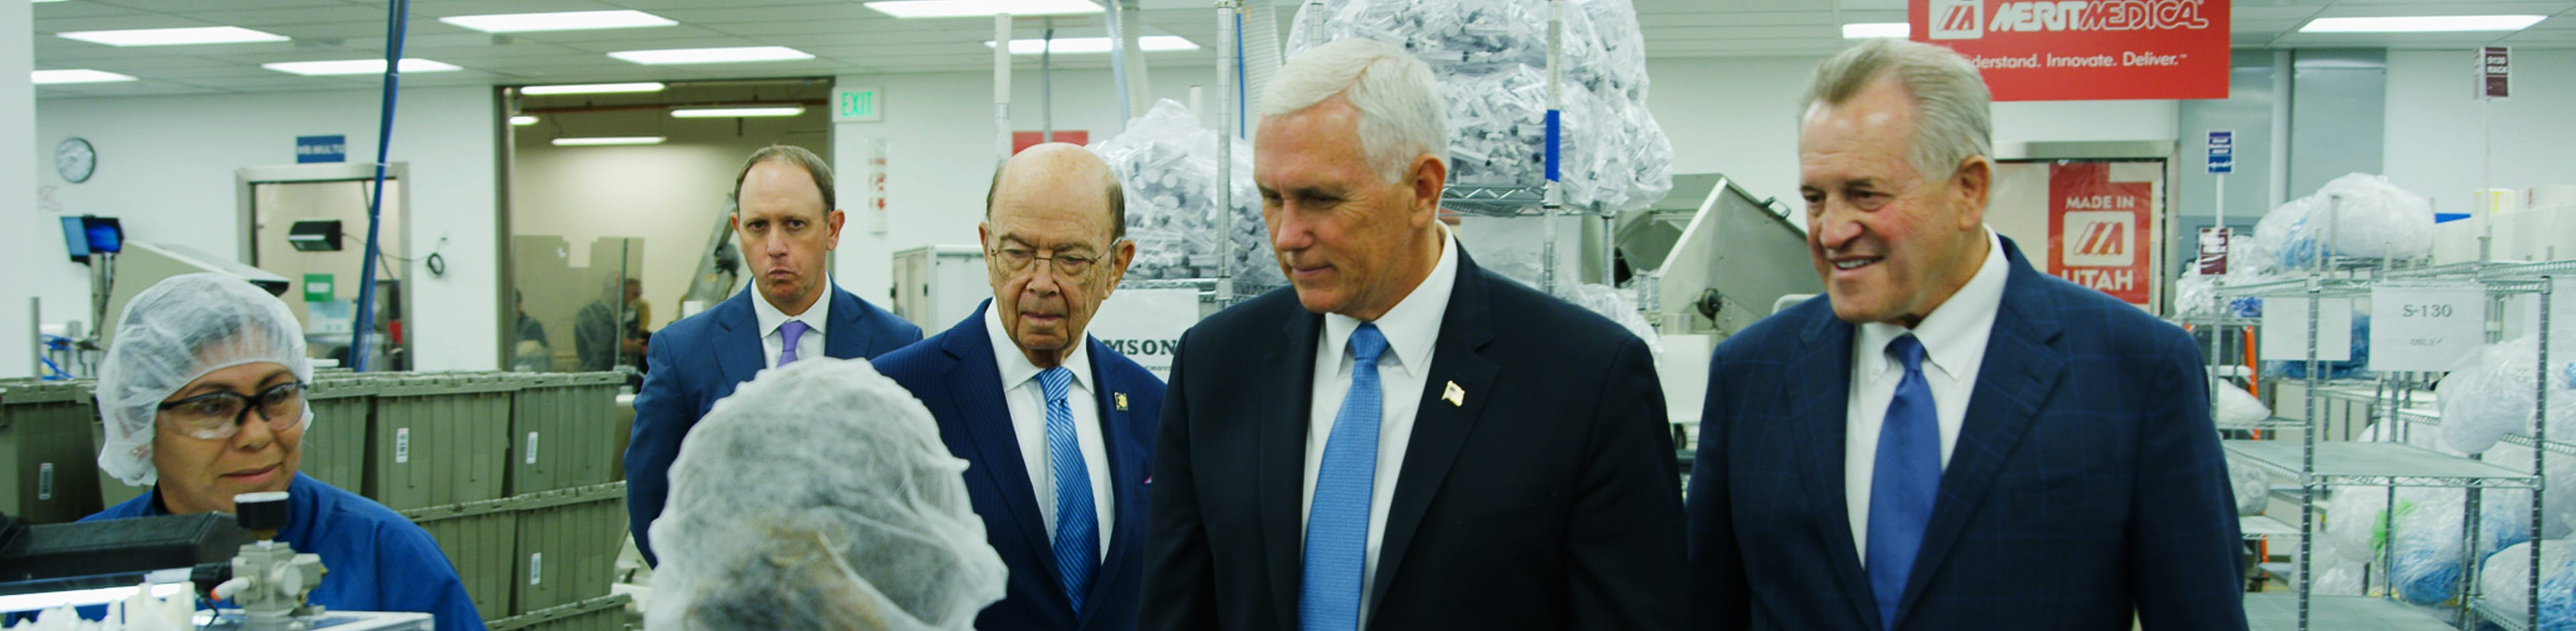 Vice President Pence & Commerce Secretary Ross Visit Merit Medical - Aug 2019